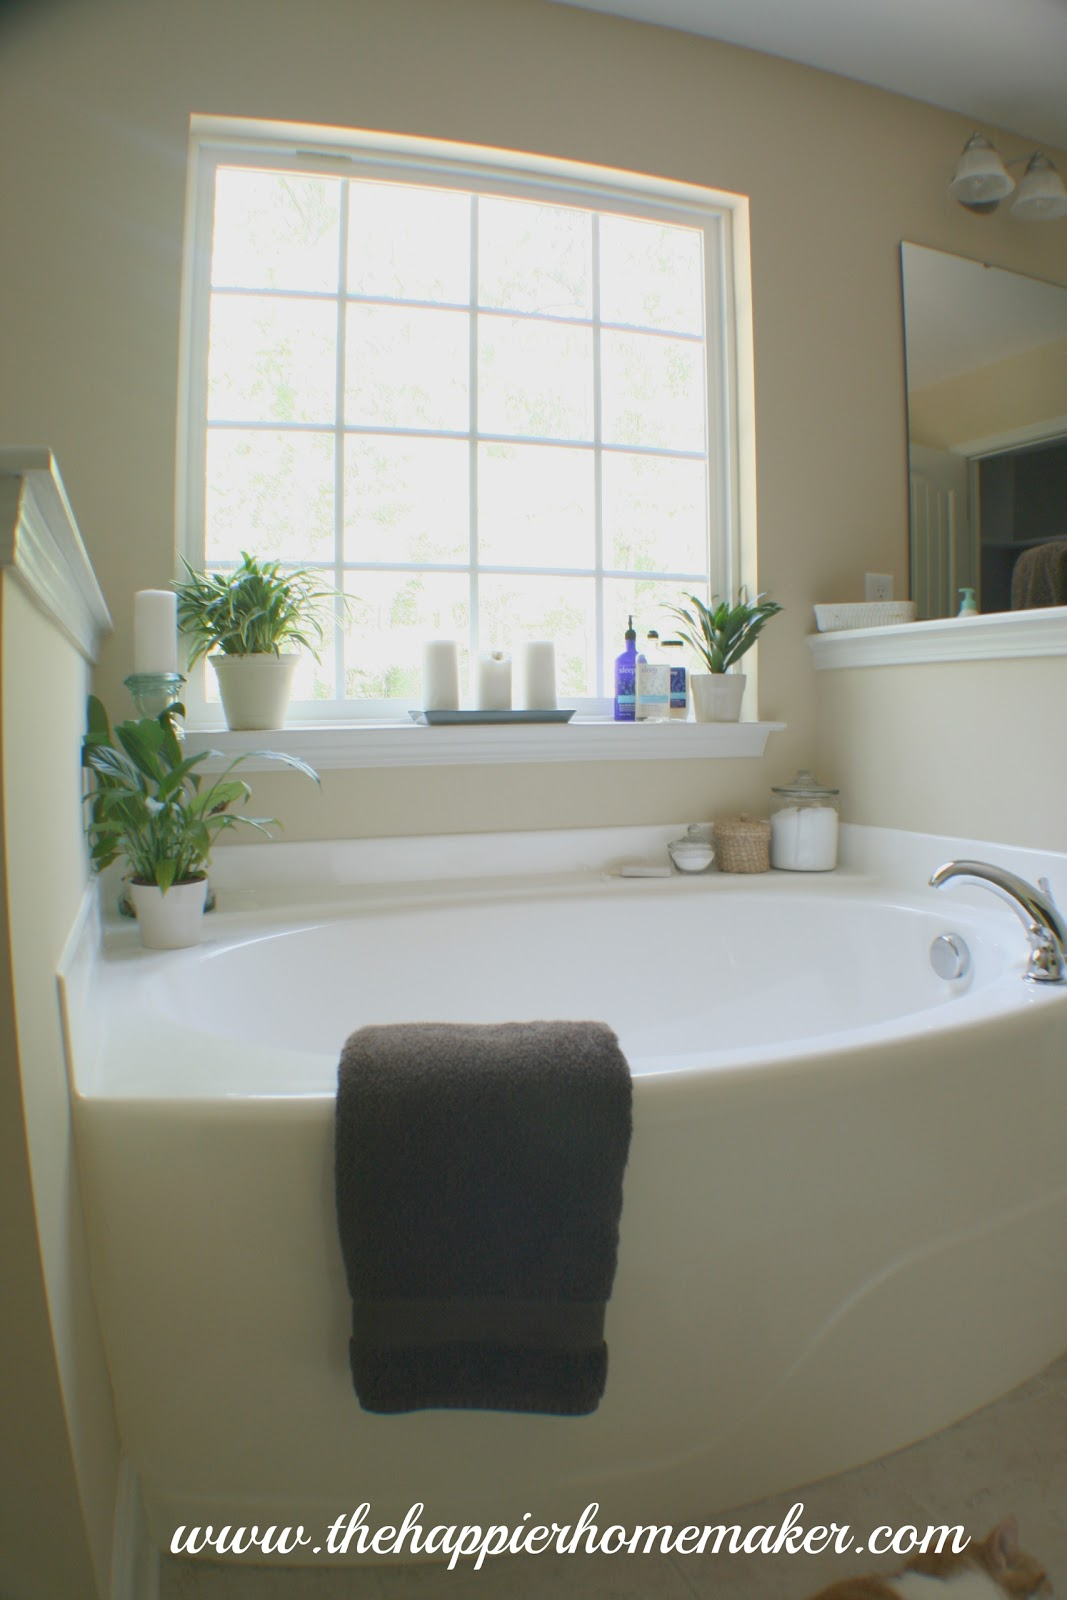 bath separate and beige tub a love the master dreamy of inspirational vanities garden